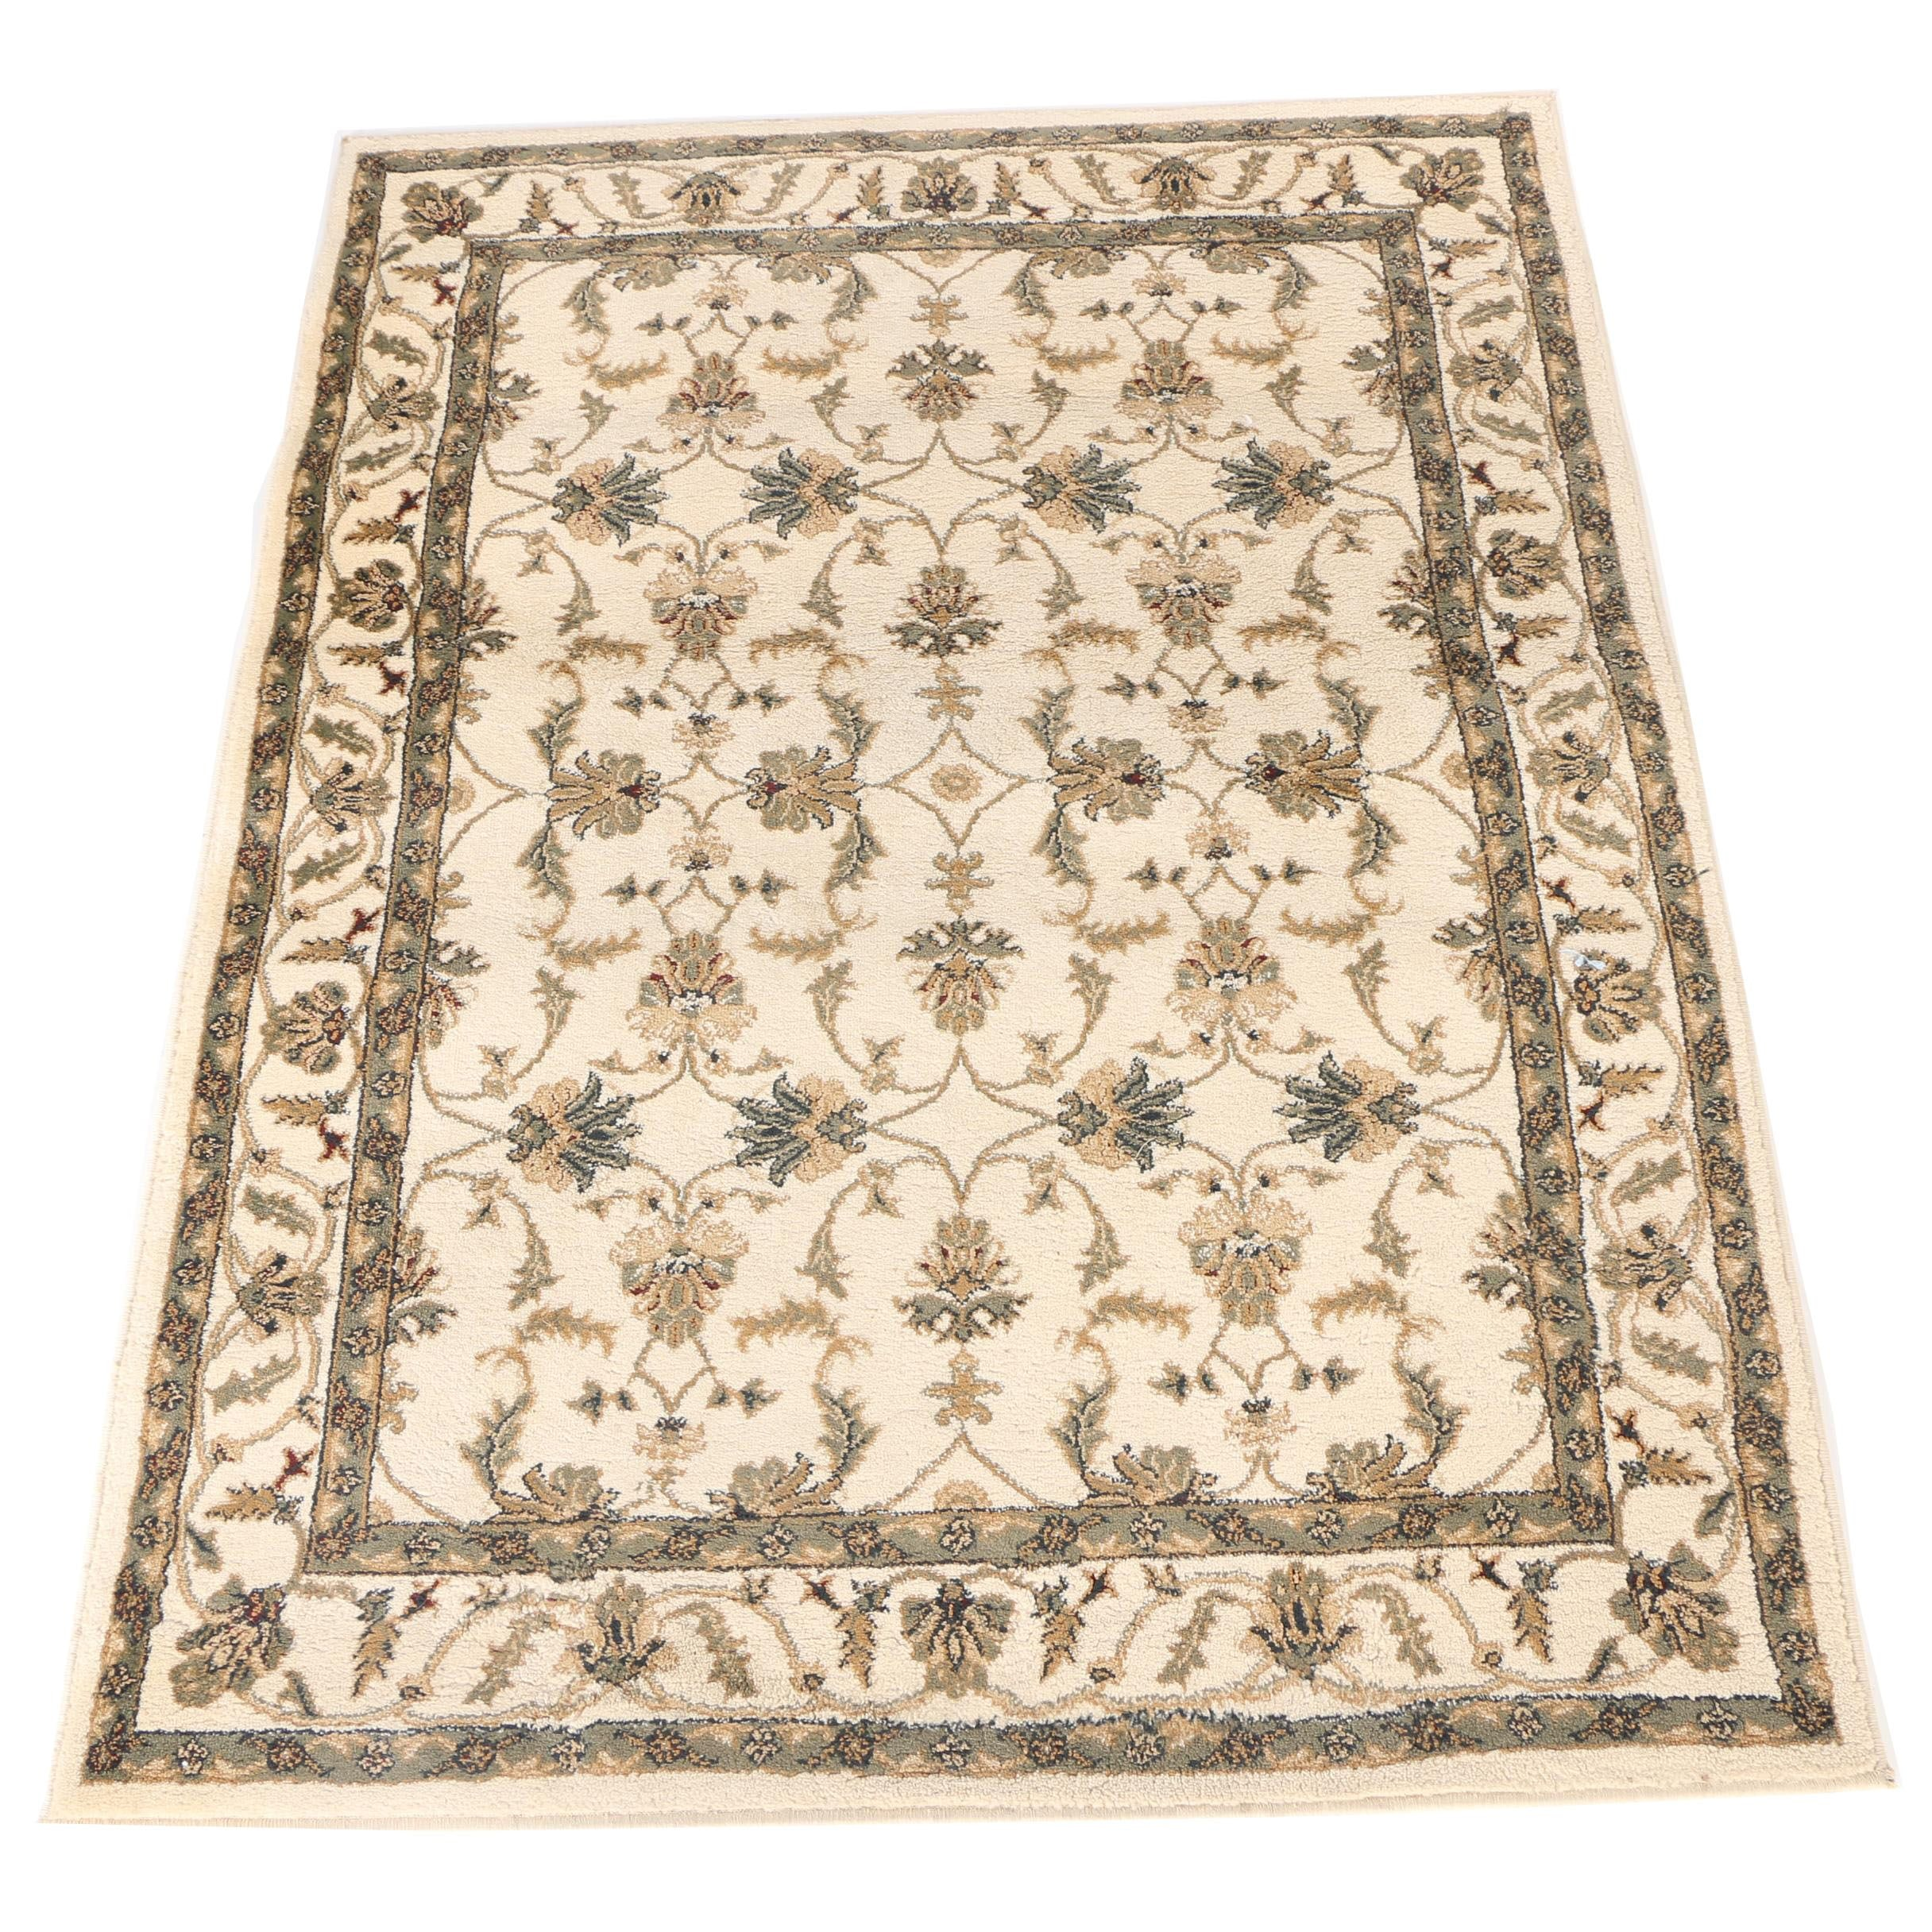 Hand-Knotted Chobi Style Area Rug